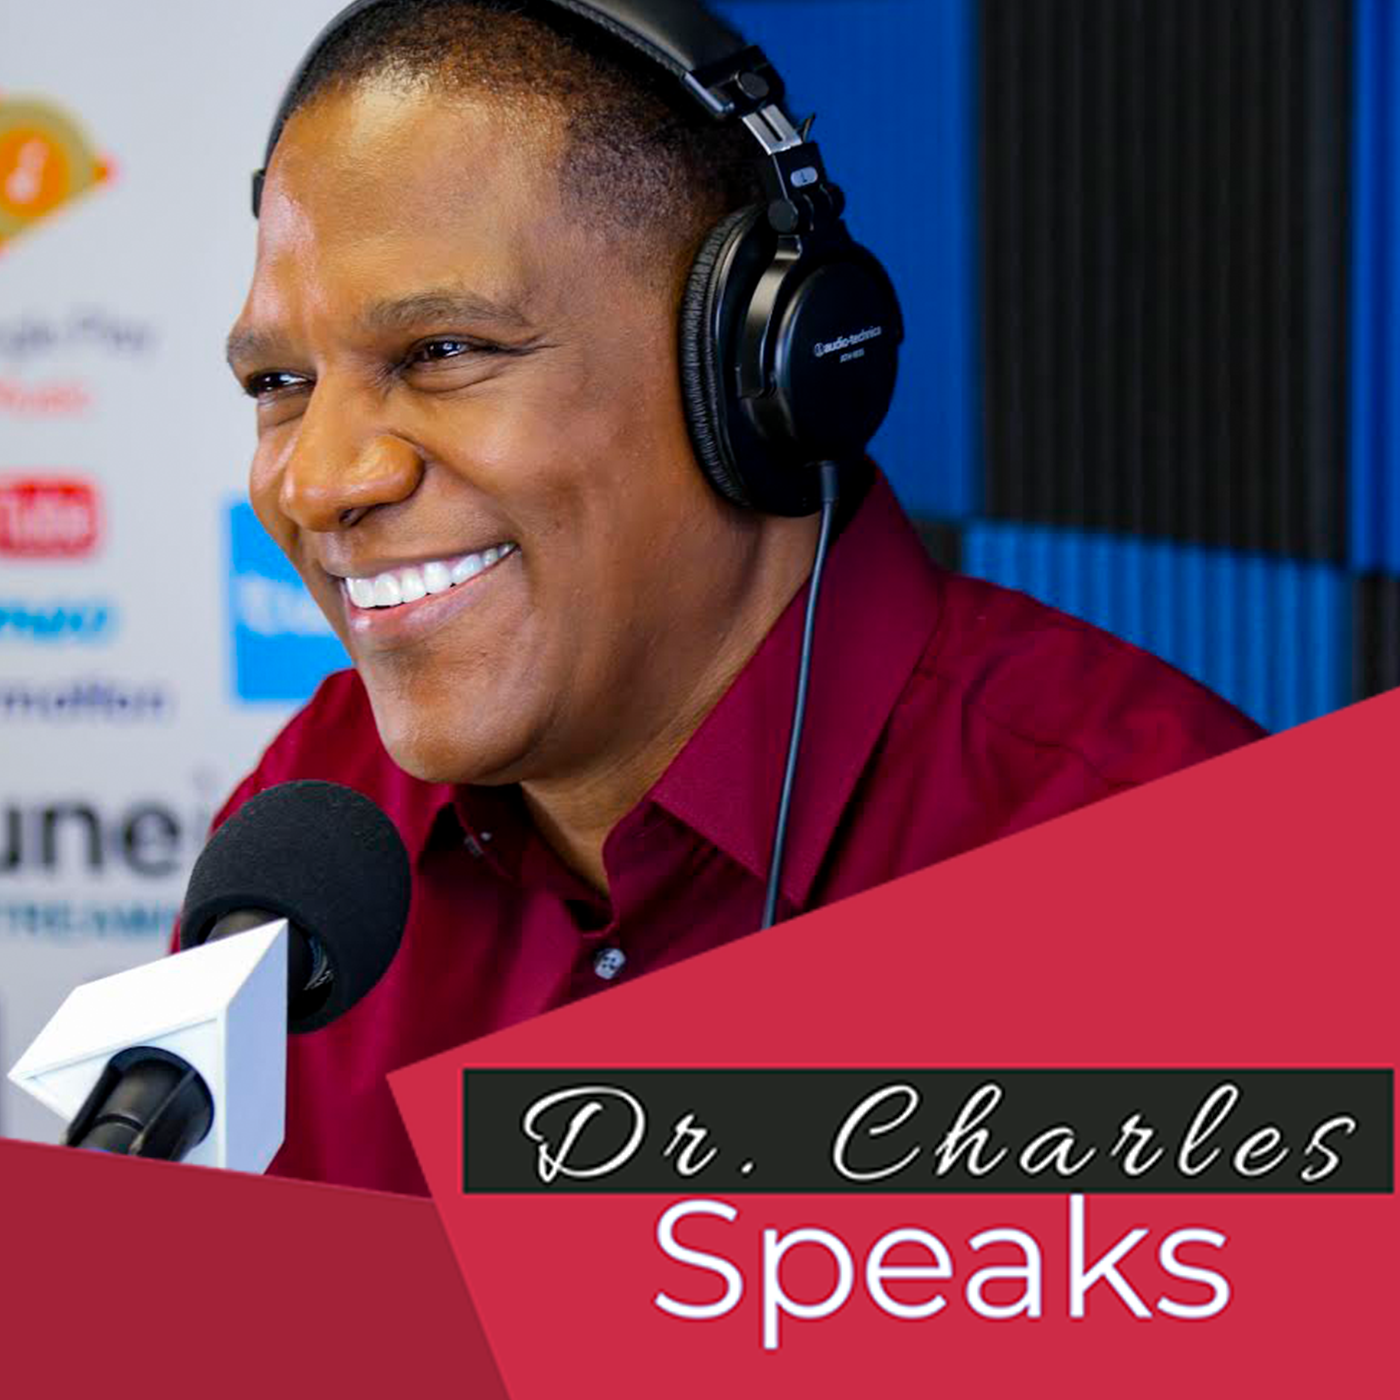 Dr. Charles Speaks show art